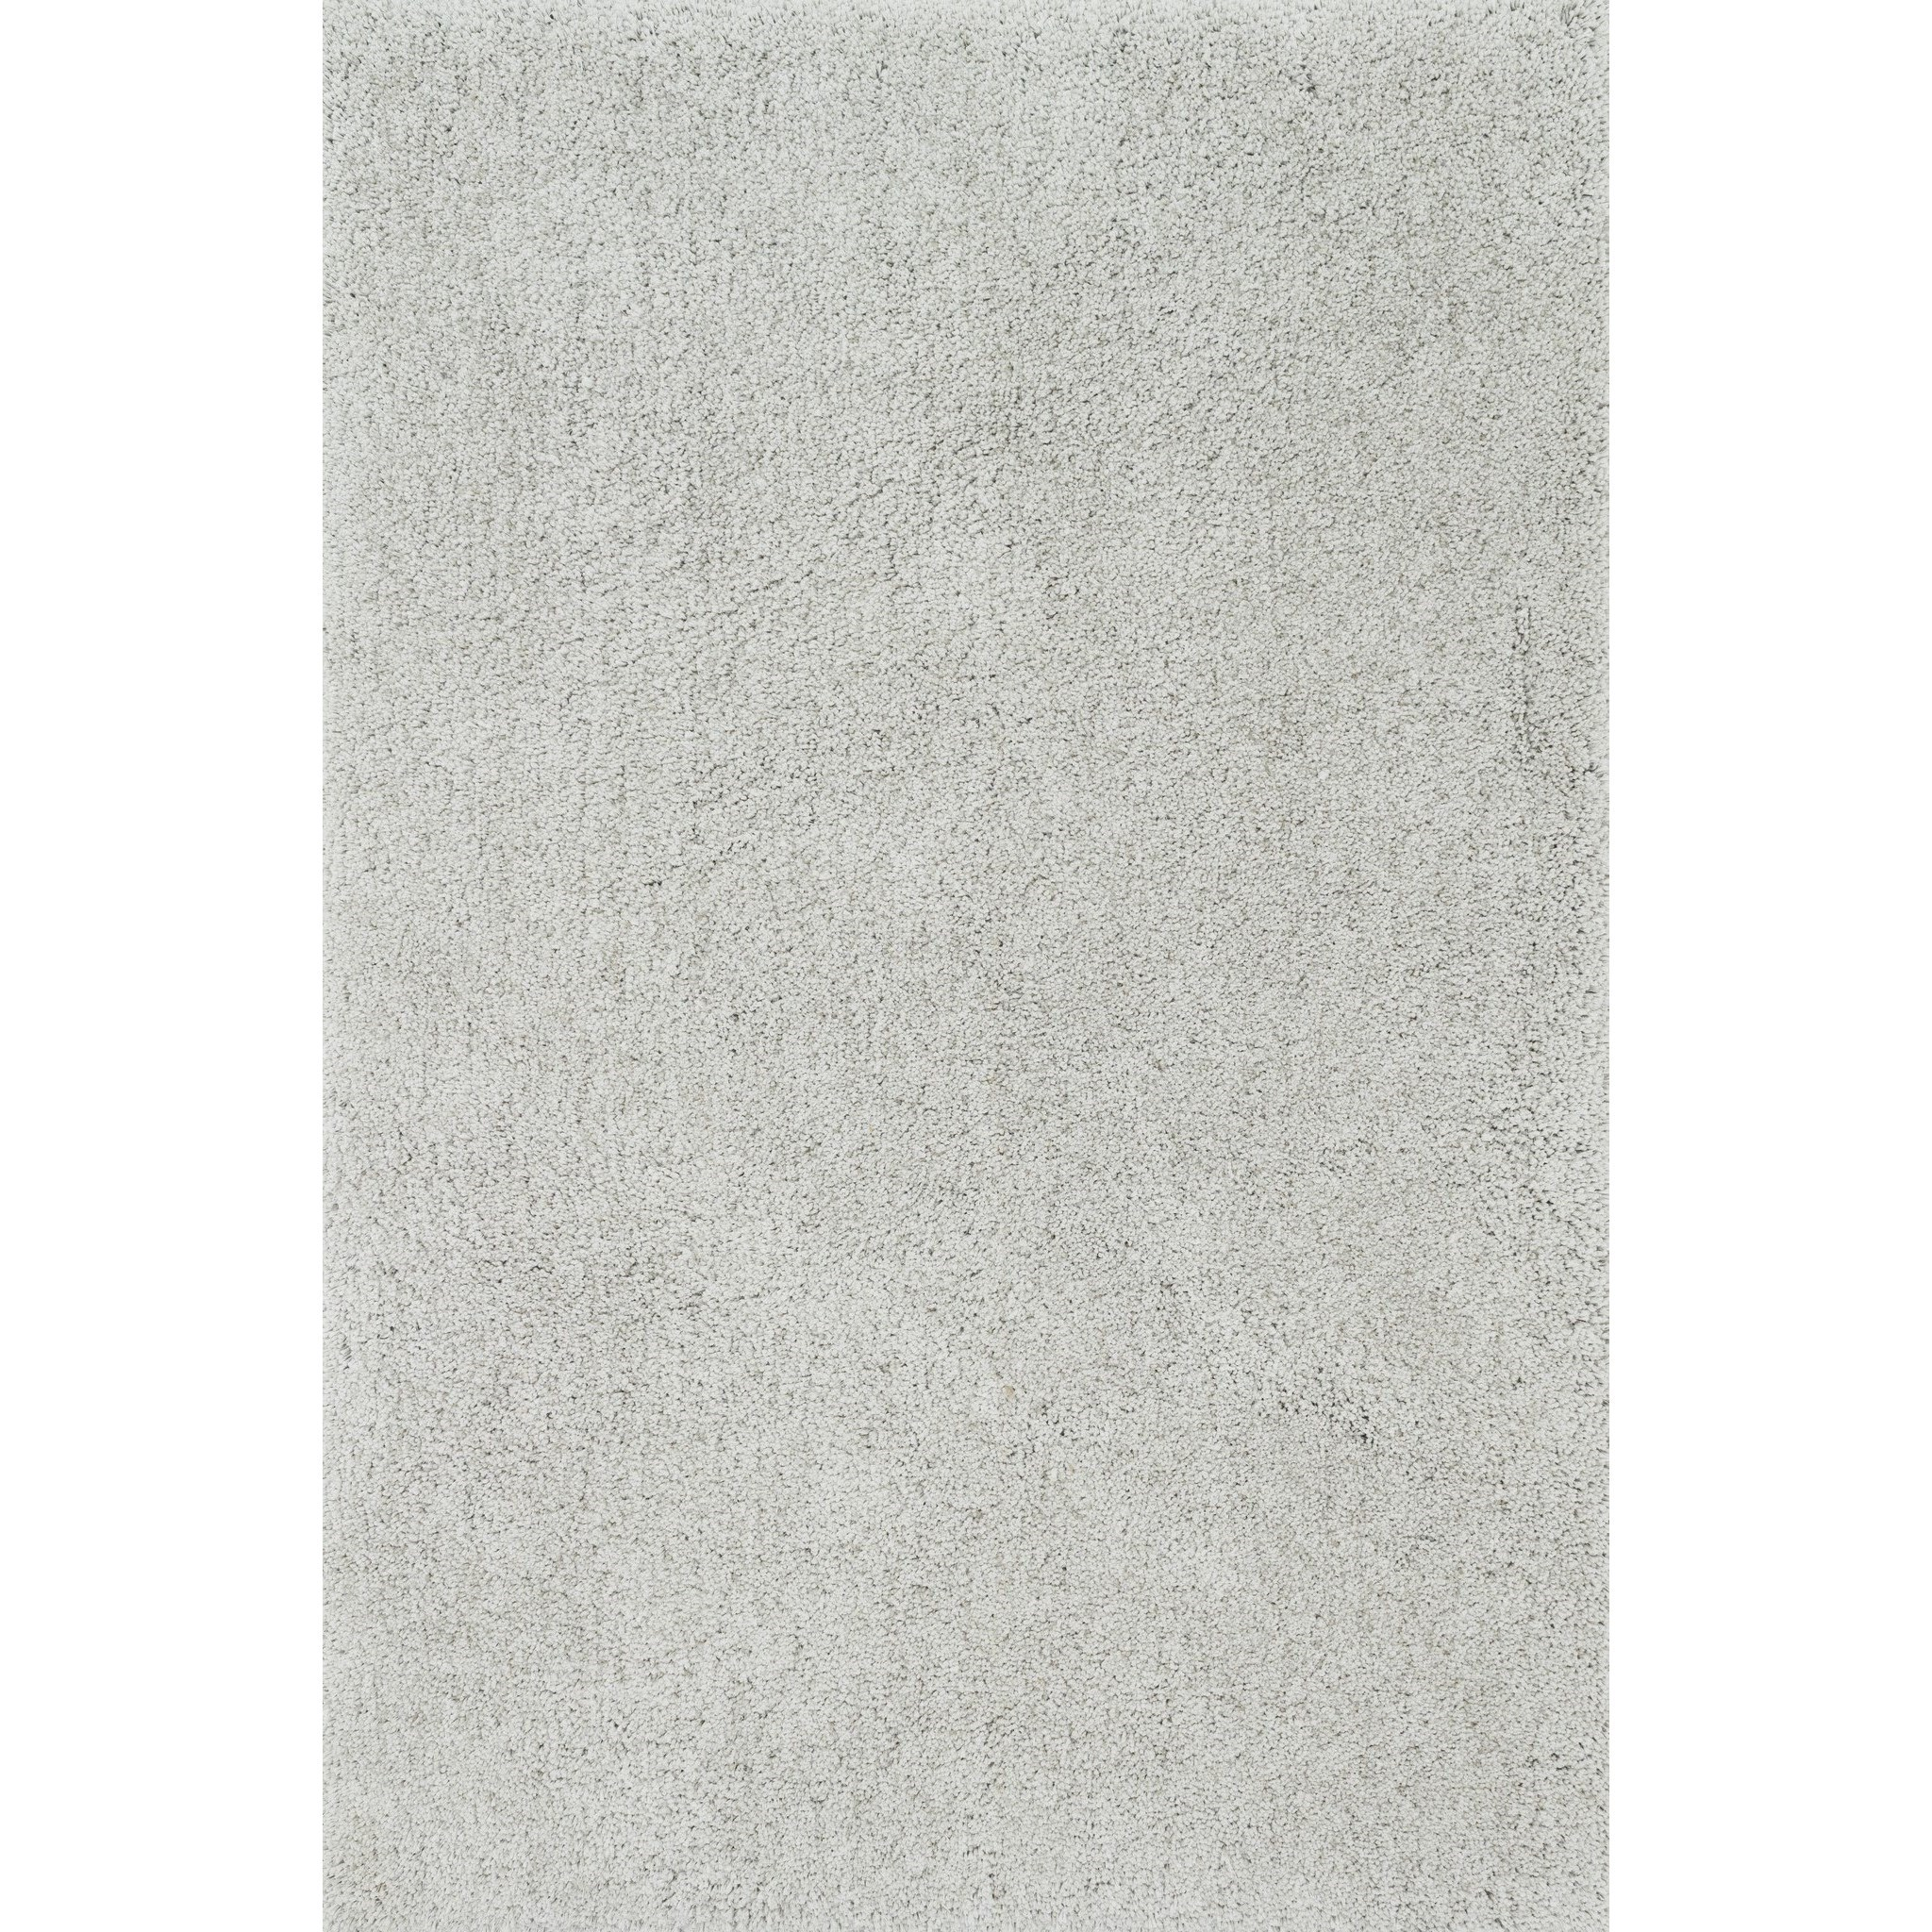 """Cozy Shag 5'-0"""" x 7'-6"""" Area Rug by Loloi Rugs at Virginia Furniture Market"""